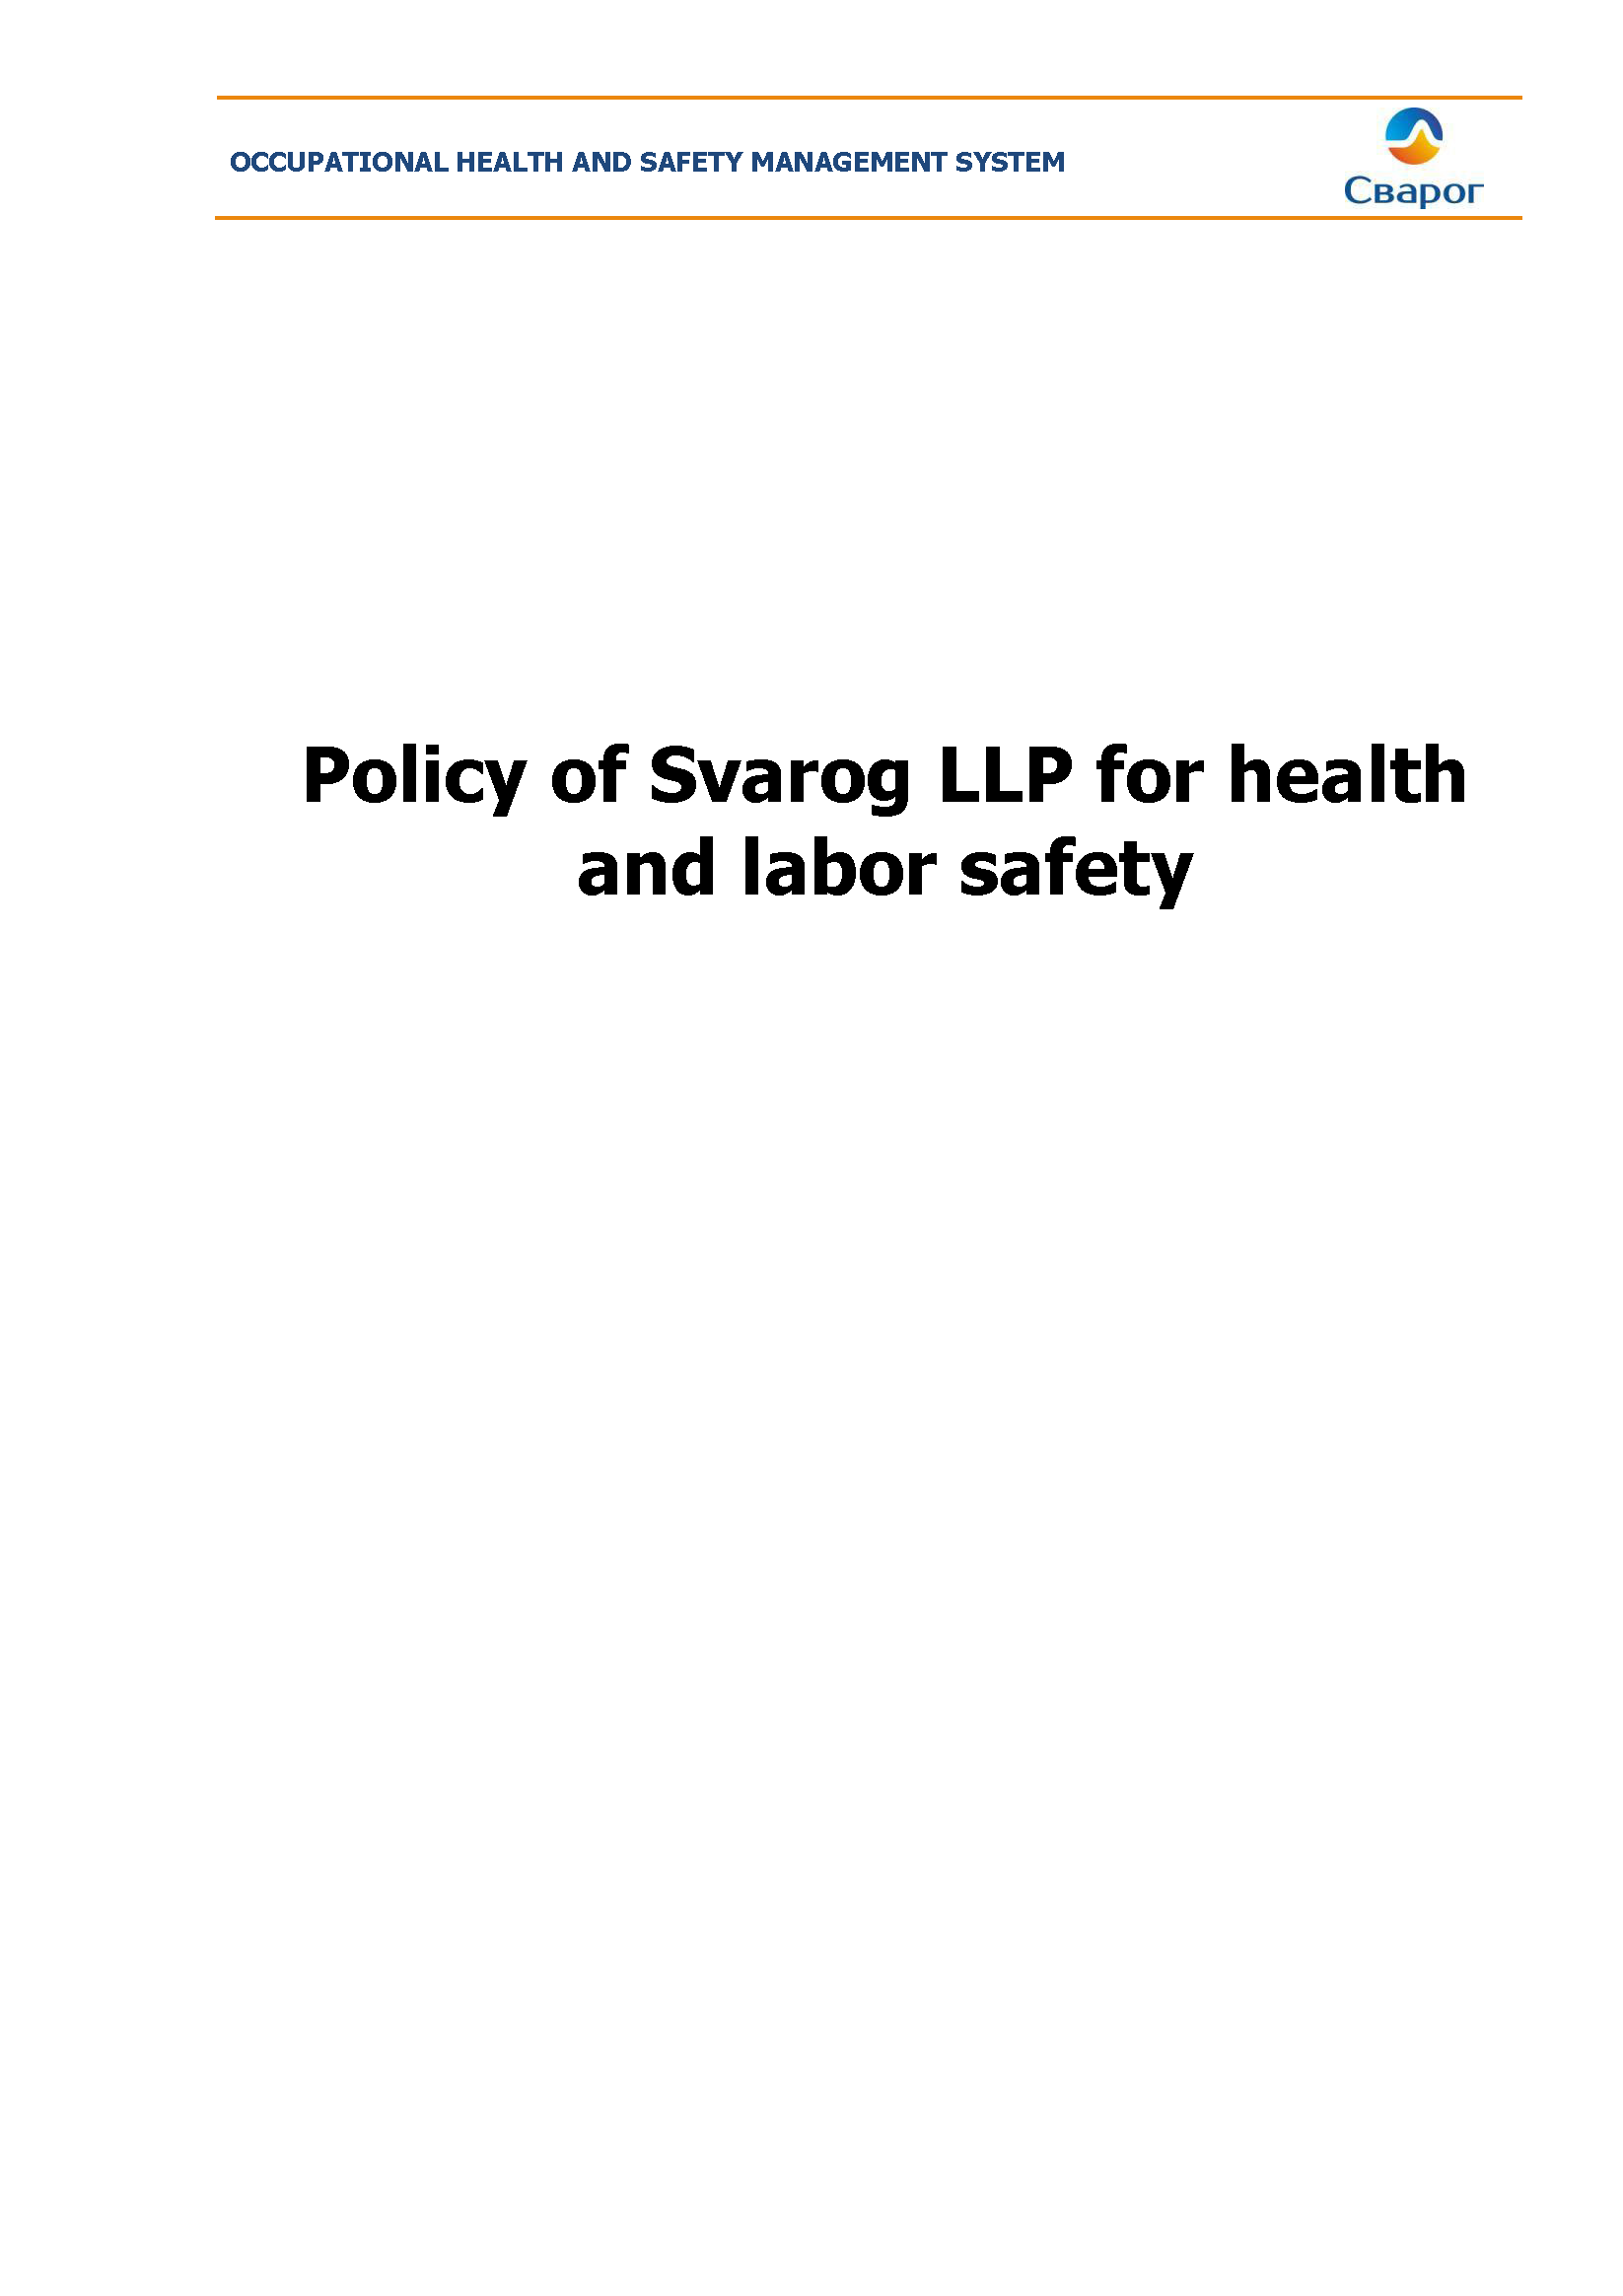 Policy of Svarog LLP for health and labor safety